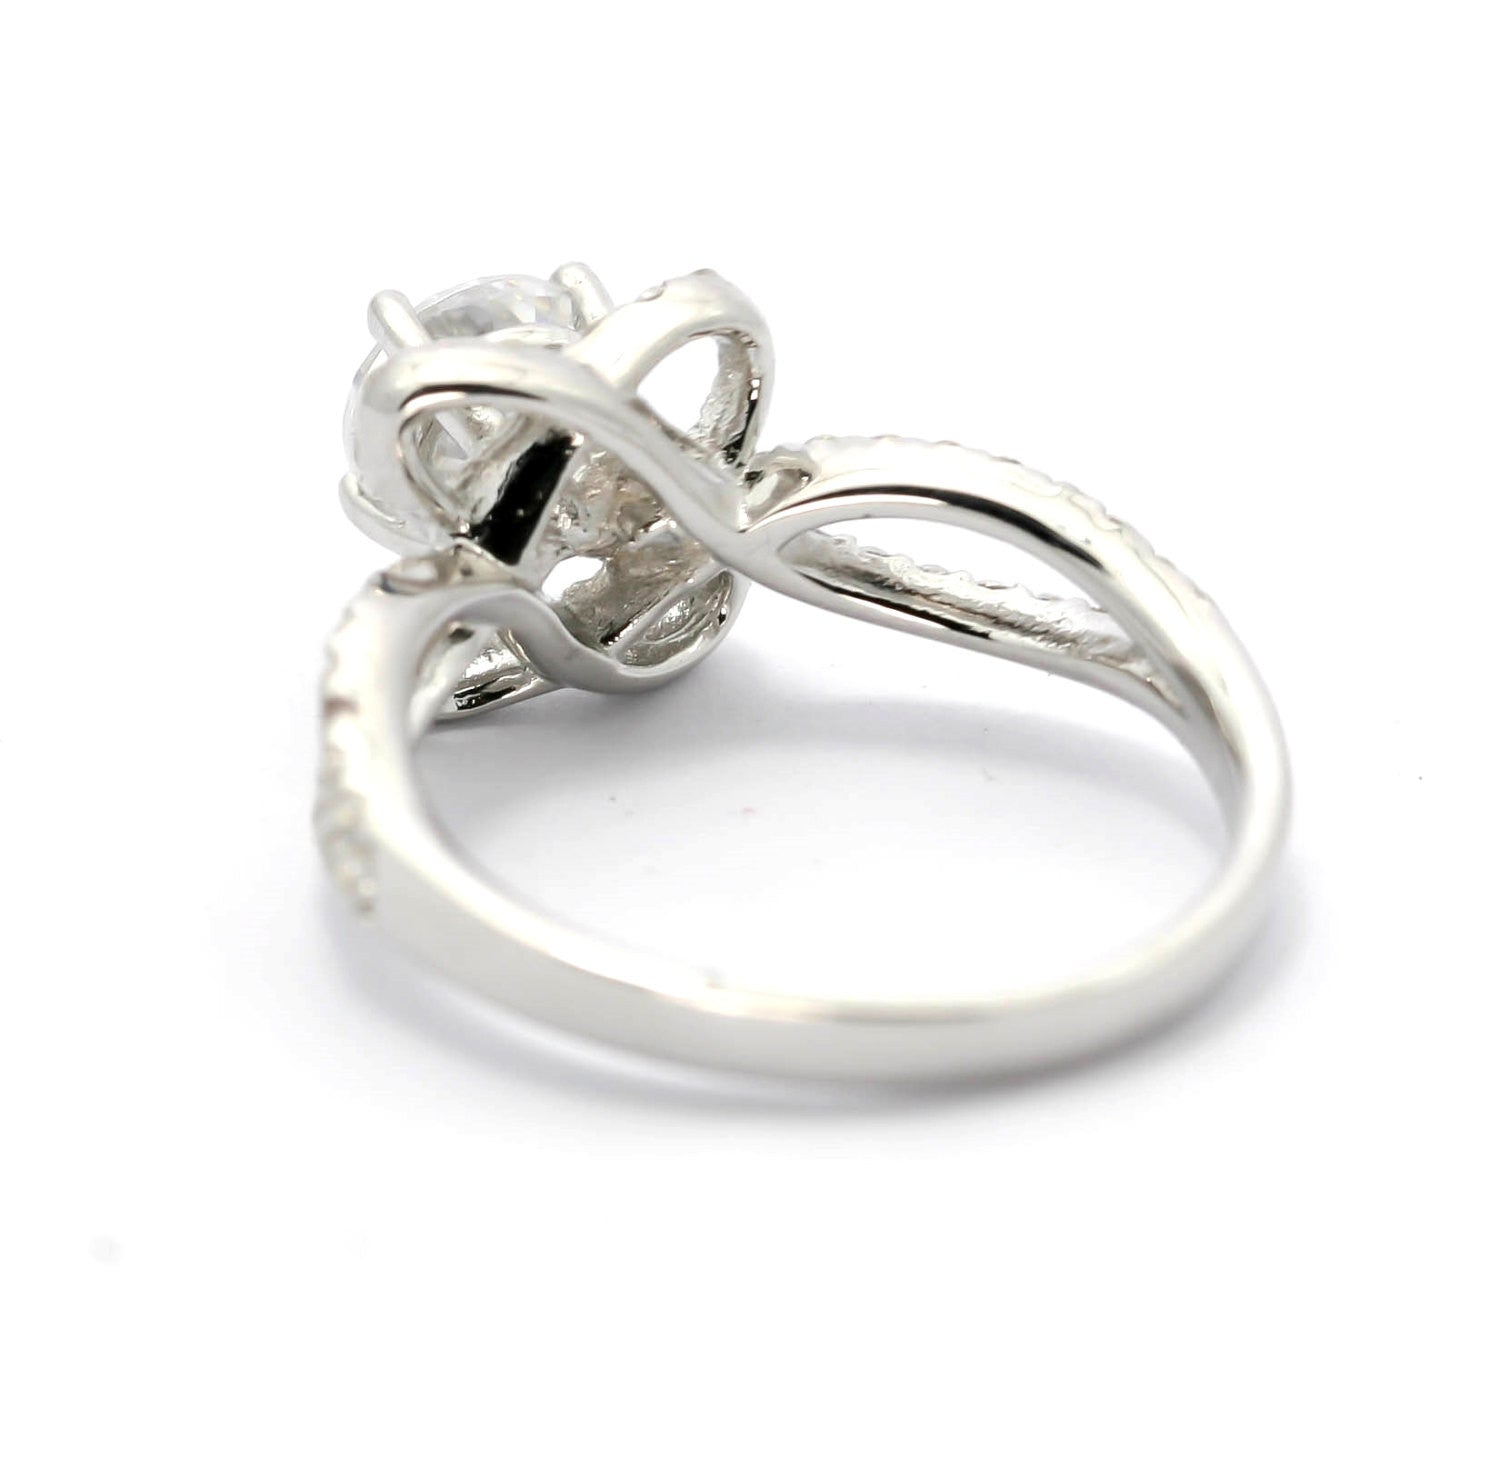 Moissanite & Diamond Flower Halo Engagement Ring, Unique With 6 mm Forever Brilliant Moissanite Split Shank With Diamond Accent Stones - FBY11558